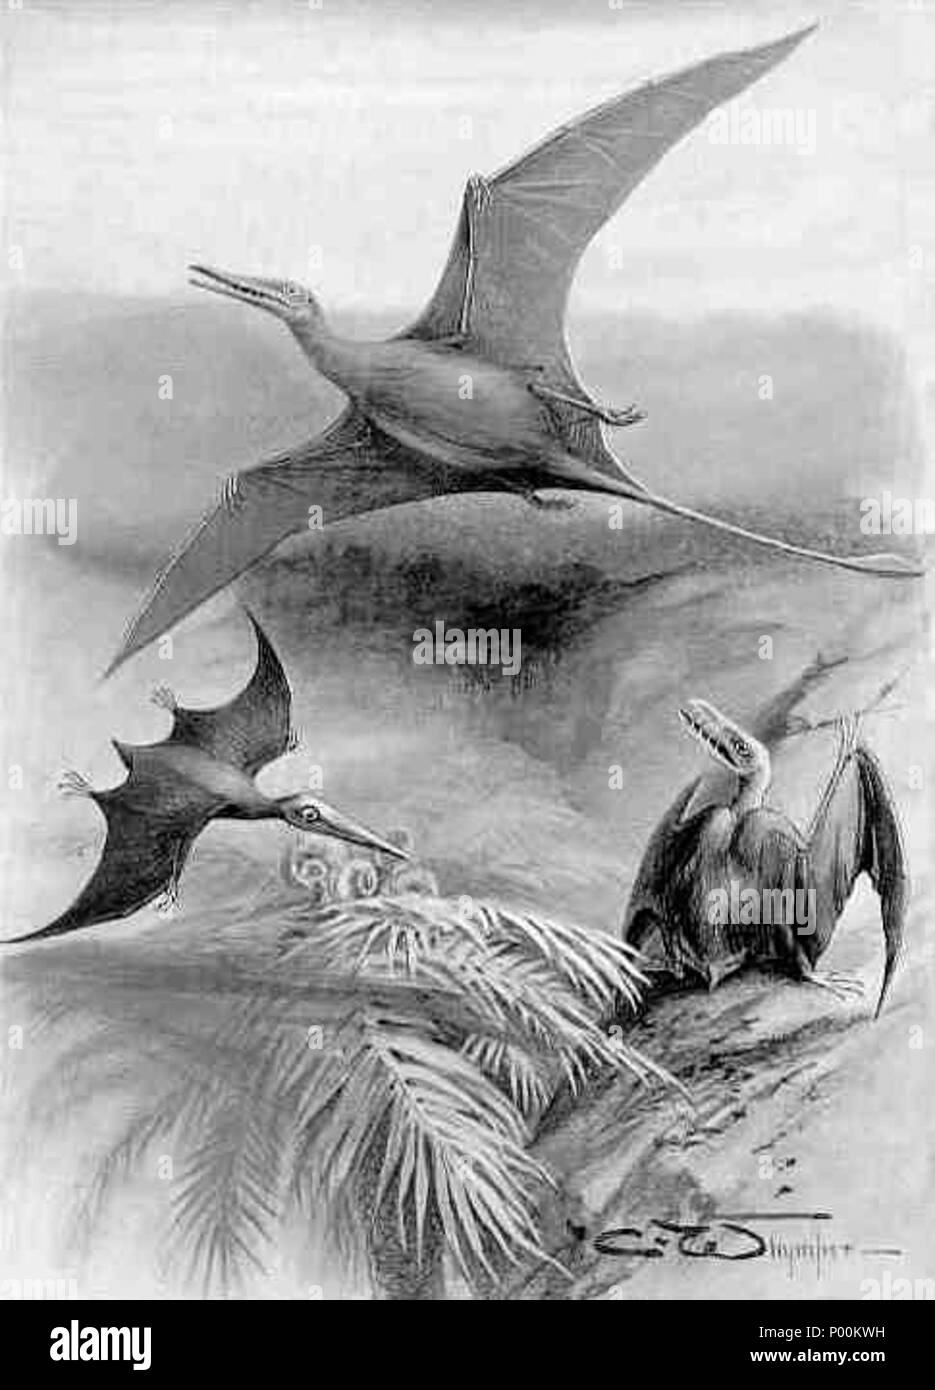 . English: Rhamphorhynchus above, with Pterodactylus and Scaphognathus below (from Nebula to Man, 1905, England)  . 1905. Charles Whymper (1853-1941) 87 Ramphorhynchus - Stock Image